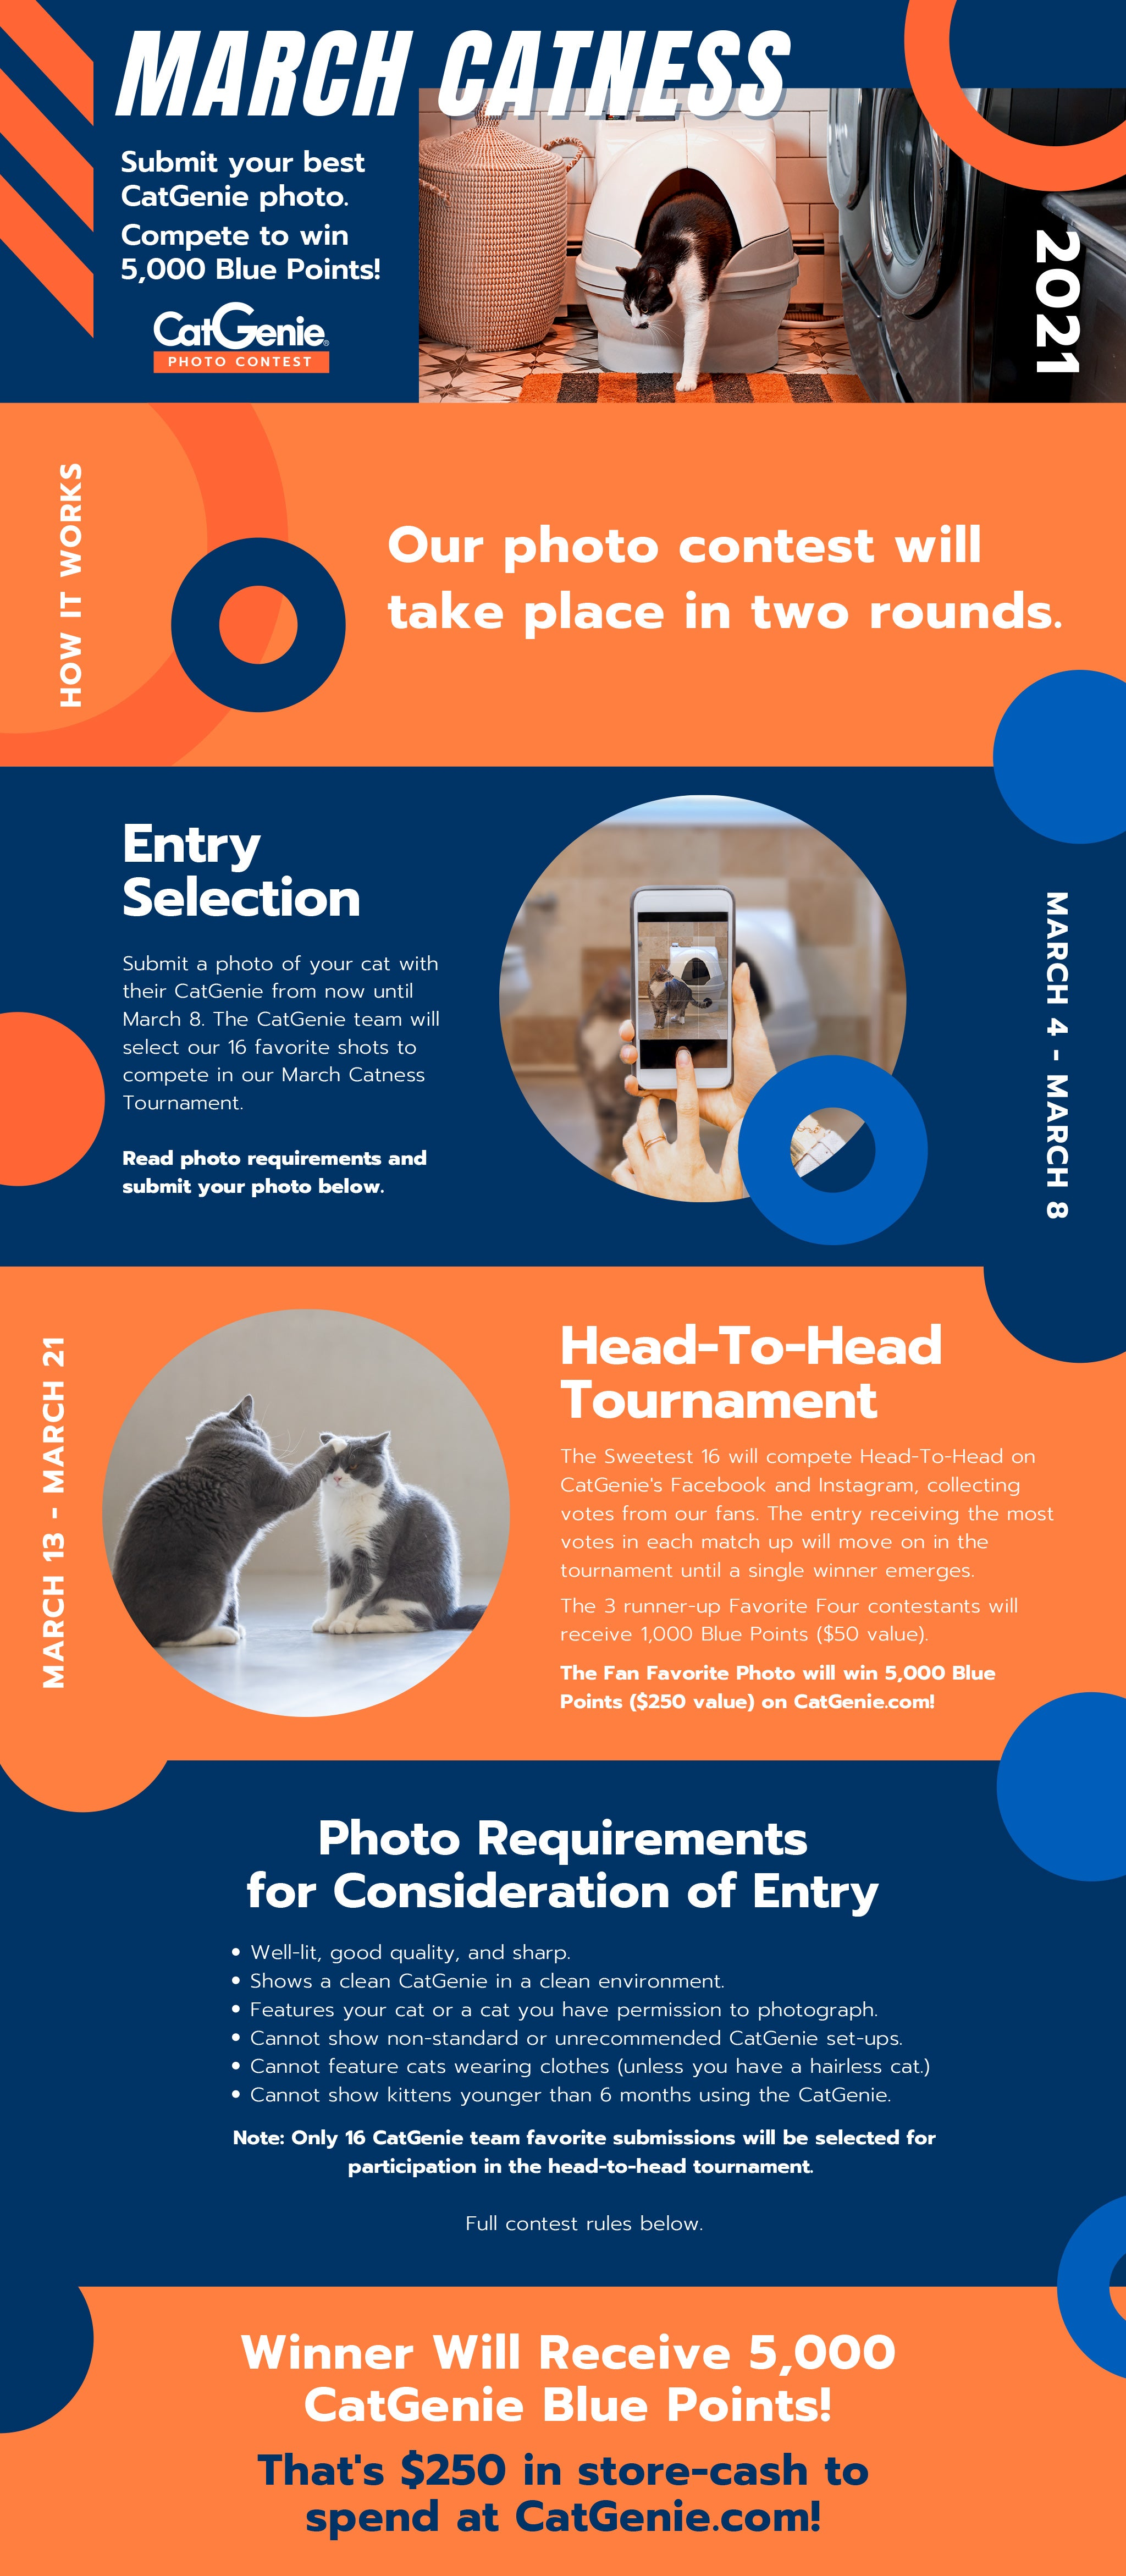 March Catness Photo Contest